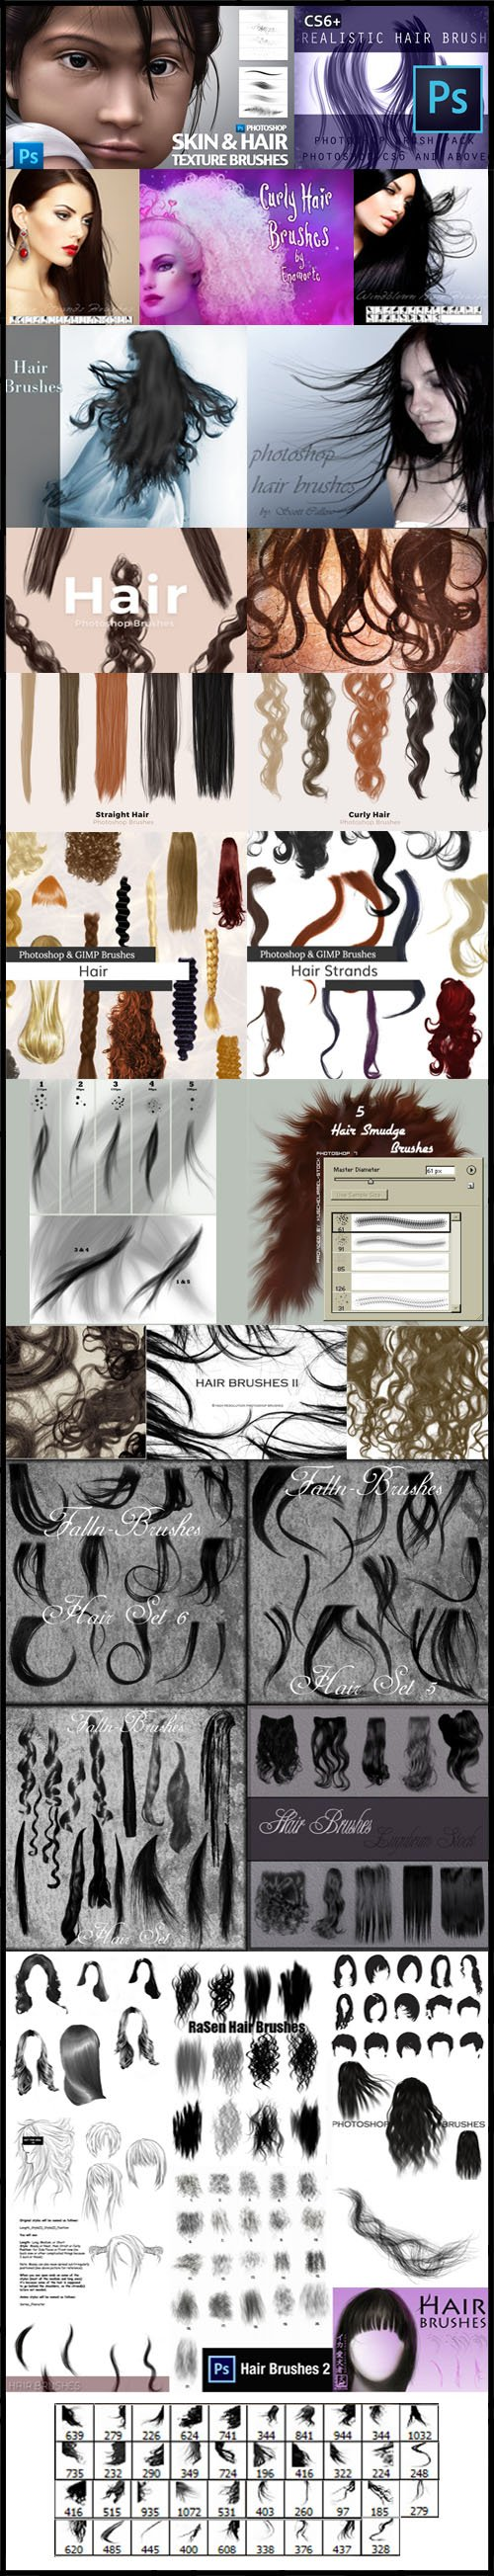 25 Fascinating Hair Brushes Bundle for Photoshop